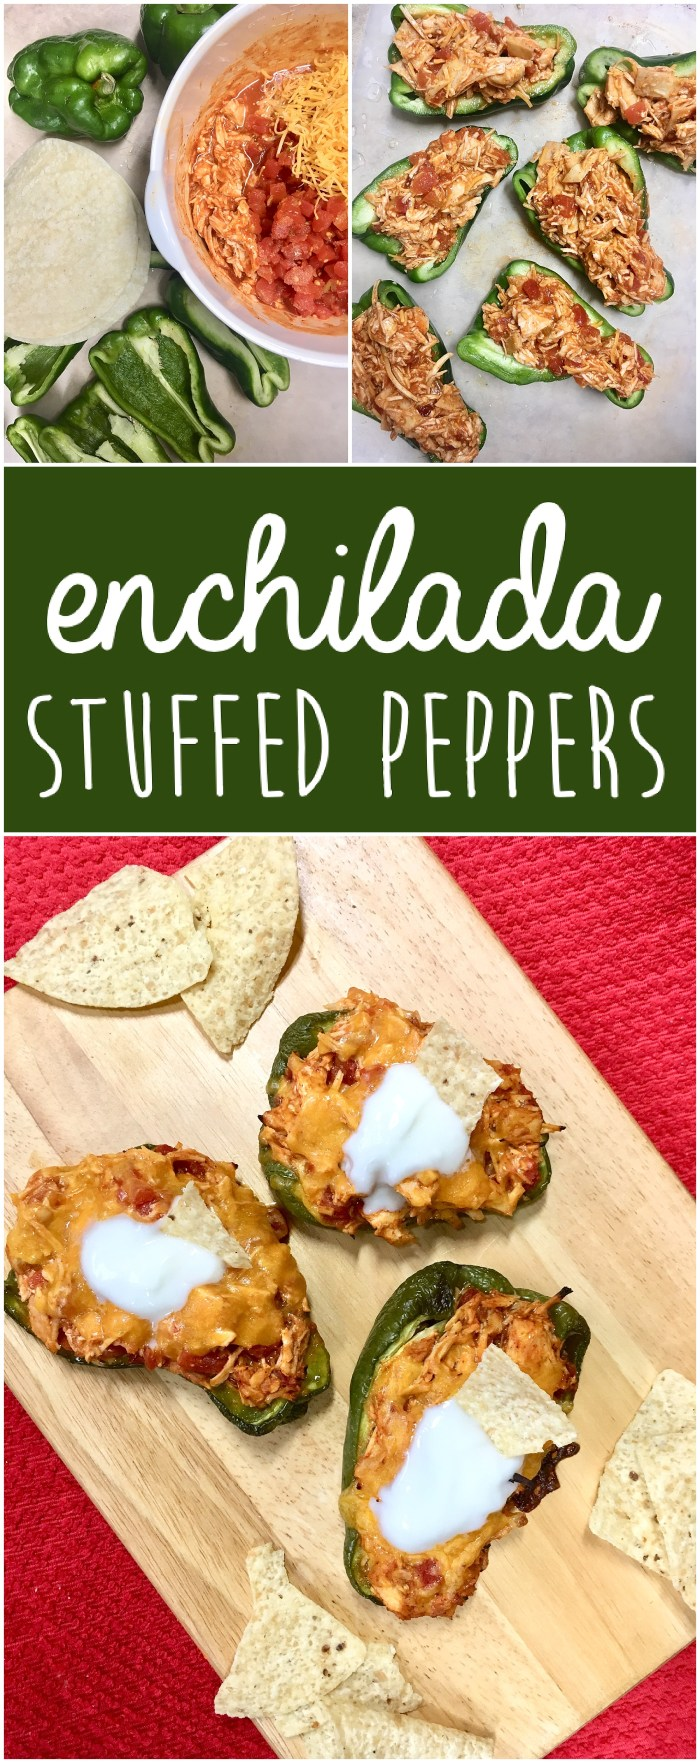 Enchilada Stuffed Peppers | Easy Dinner Ideas | Quick Dinner Recipes | Easy Dinner Recipes | Low Carb Recipes | Keto Diet | Stuffed Peppers | Mexican Food | Healthy Meals | Kid Friendly | Six Clever Sisters